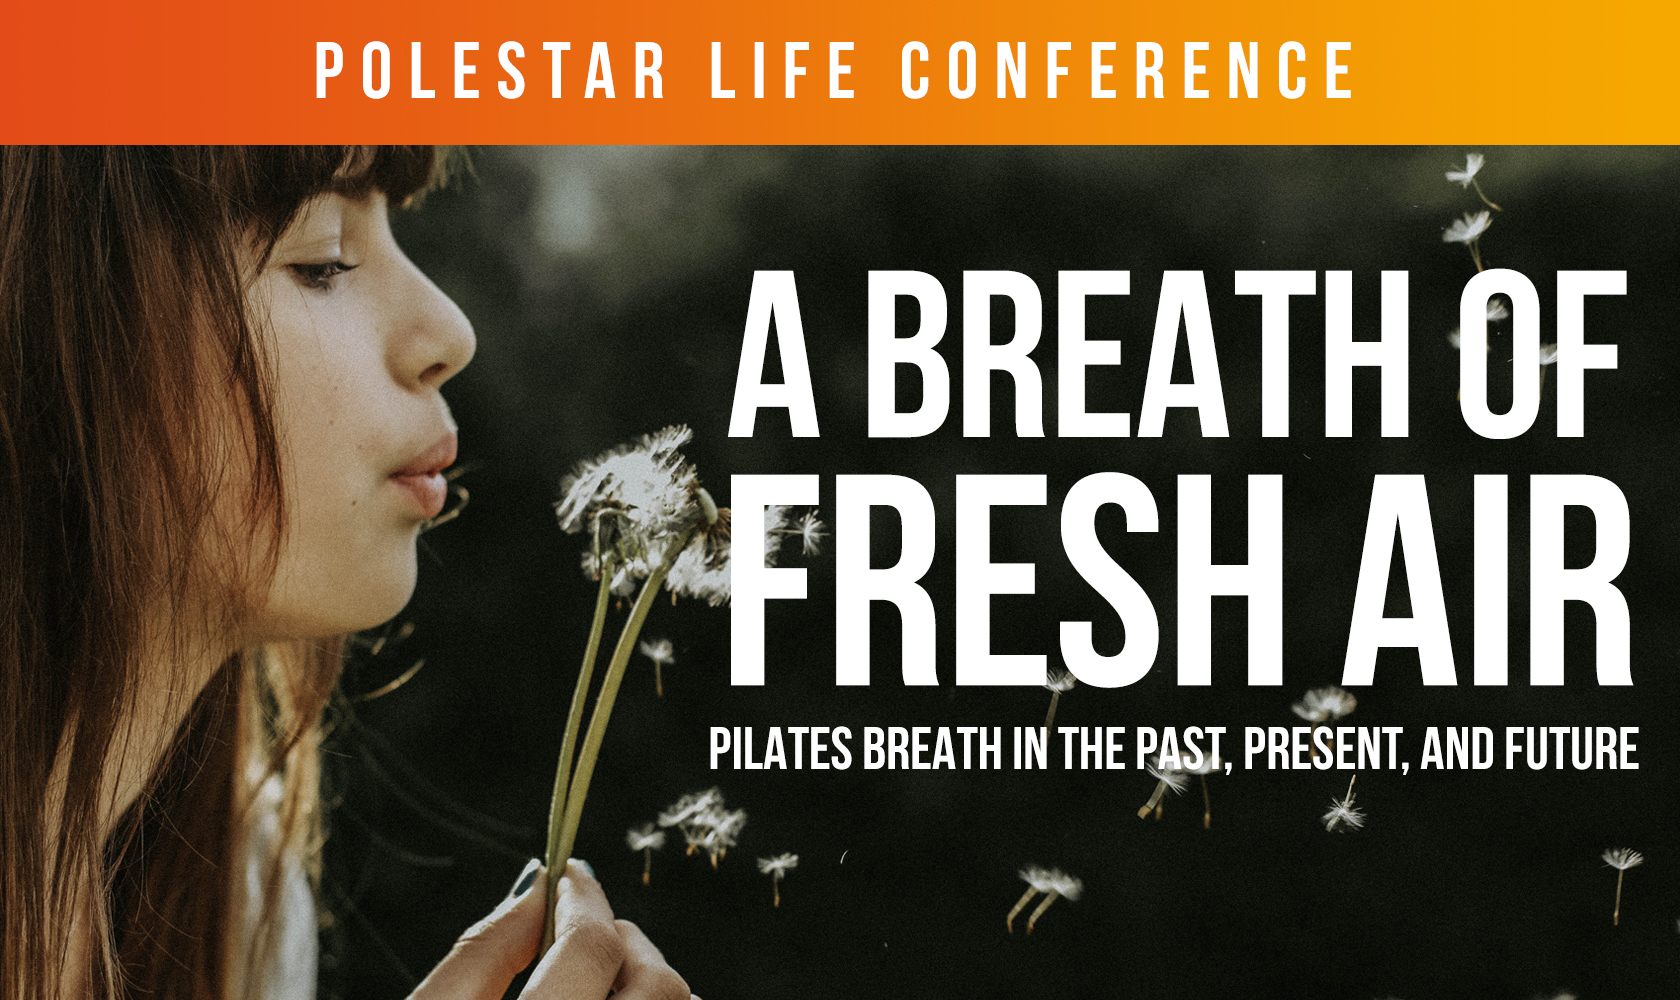 A Breath of Fresh Air (Polestar Life Conference Series)